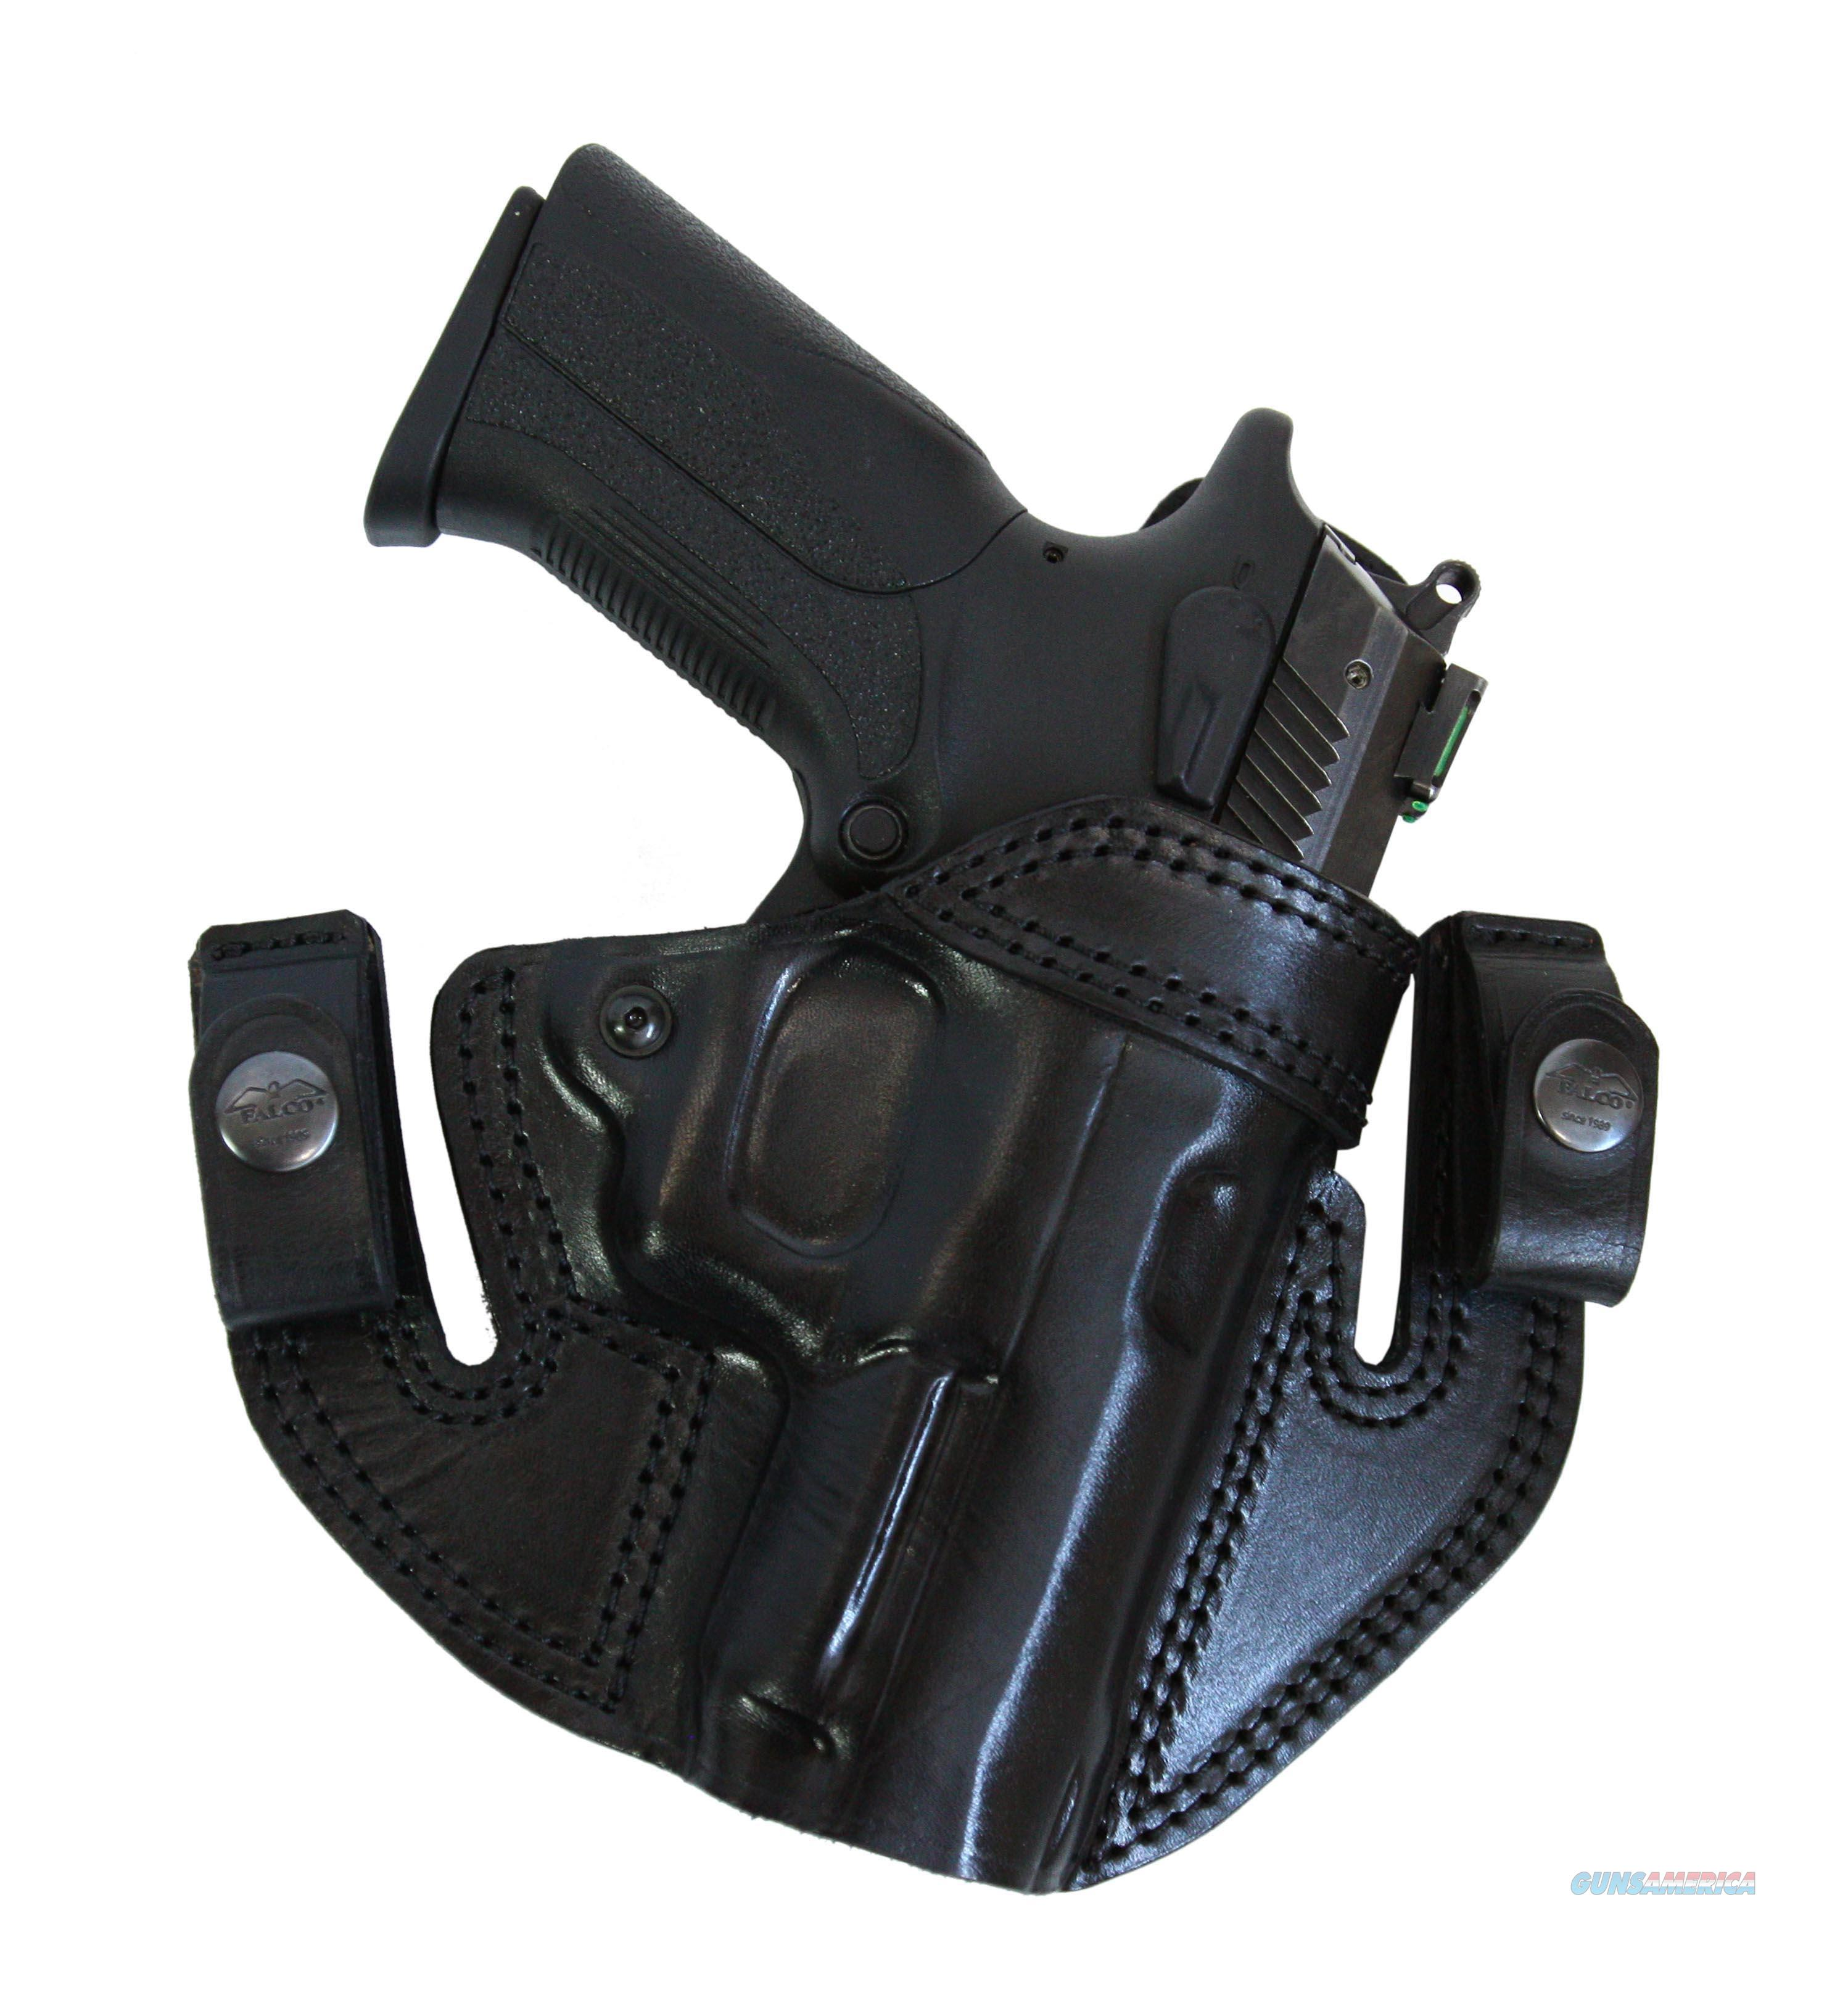 IWB / OWB Leather Gun Holster  Springfield XDS  Non-Guns > Holsters and Gunleather > Concealed Carry